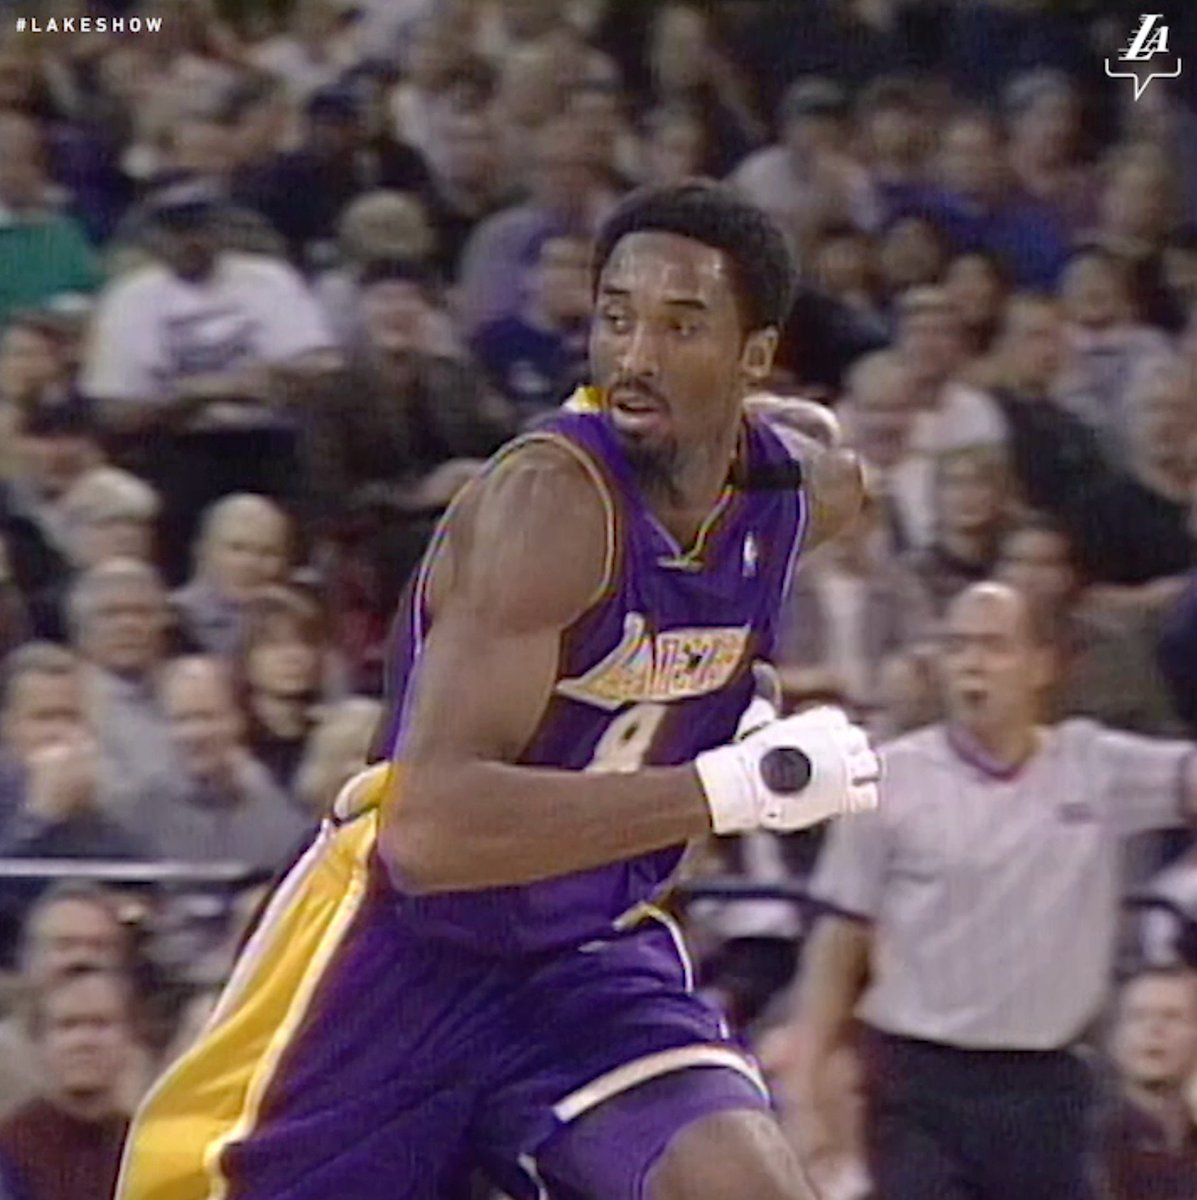 Playing basketball with gloves